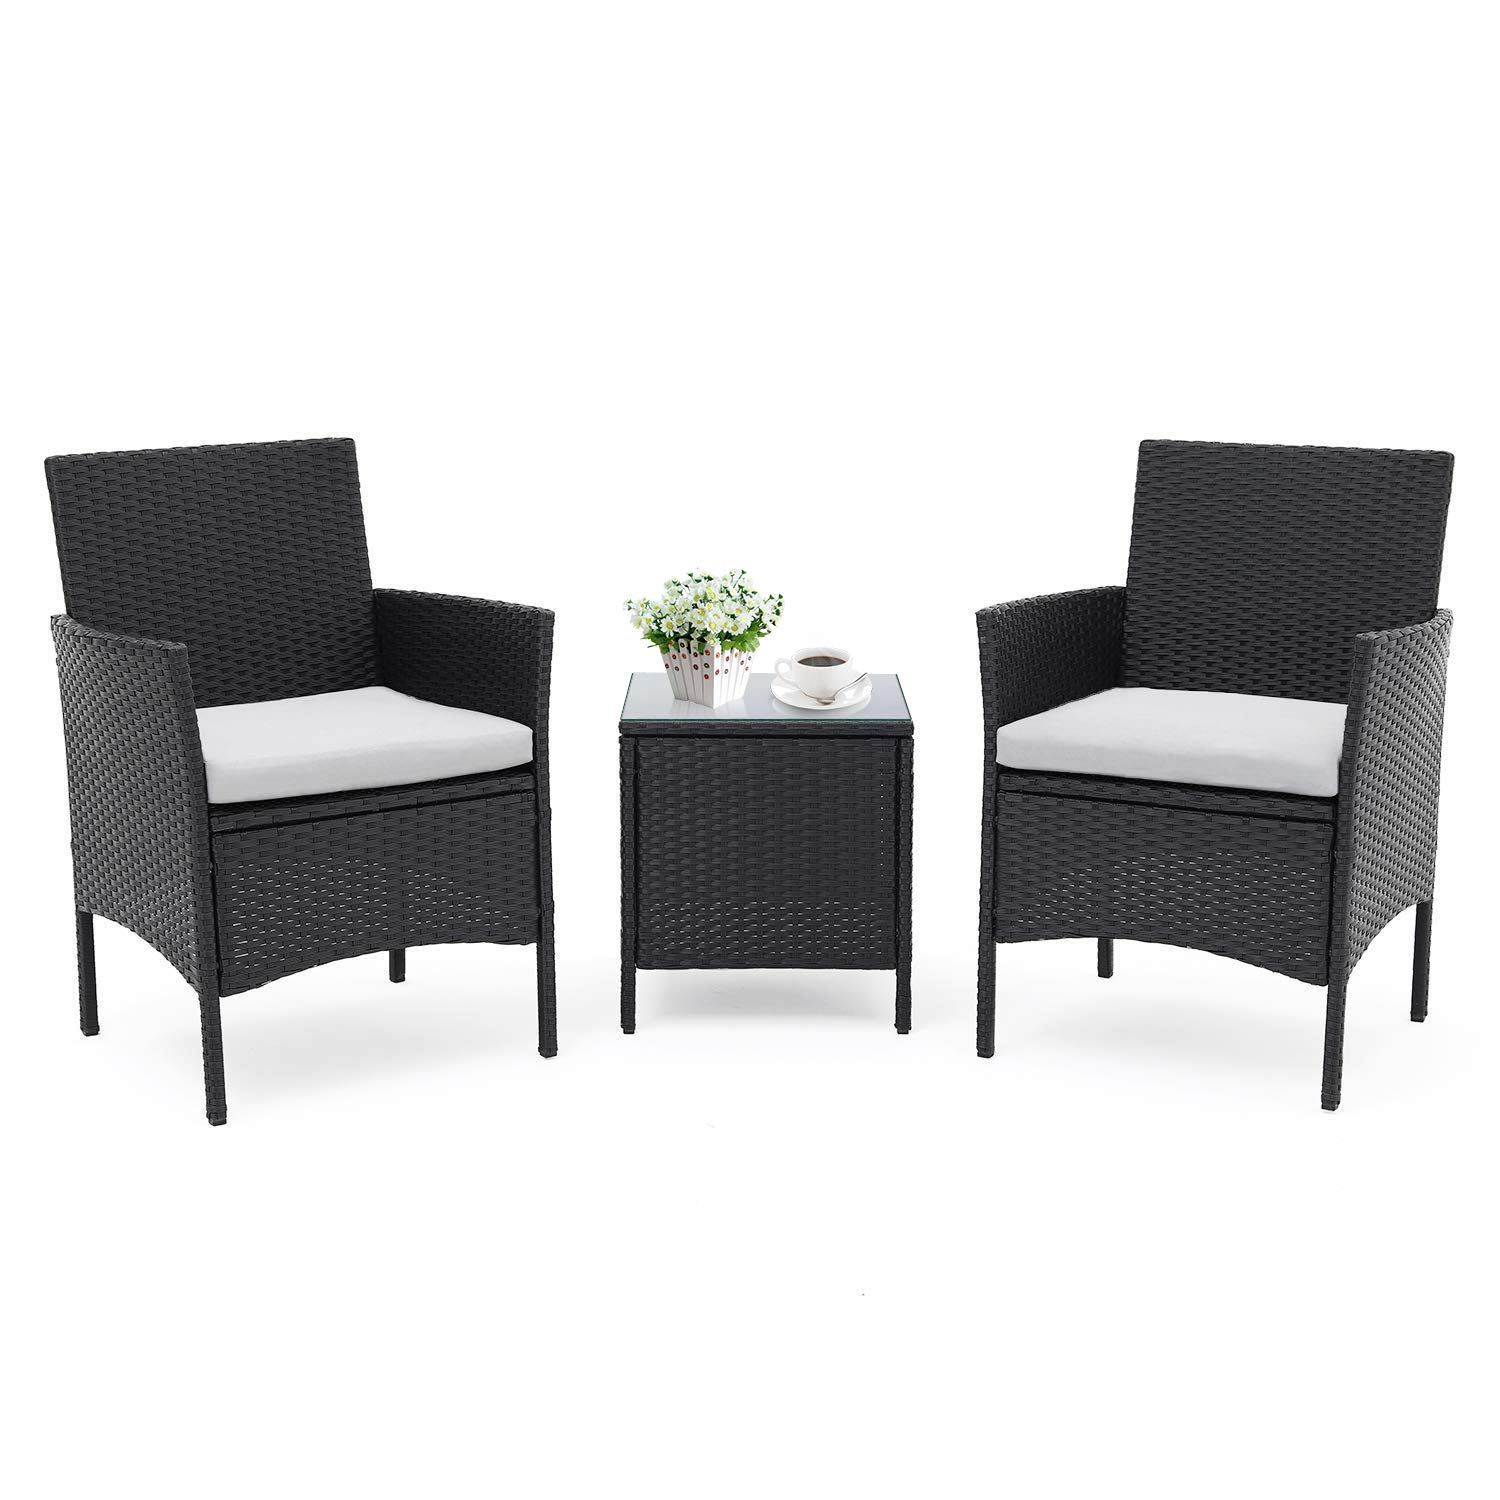 Patiomore 3 Pieces Outdoor Bistro Set Cushioned Furniture Set PE Wicker Patio Chairs with Coffee Table Black